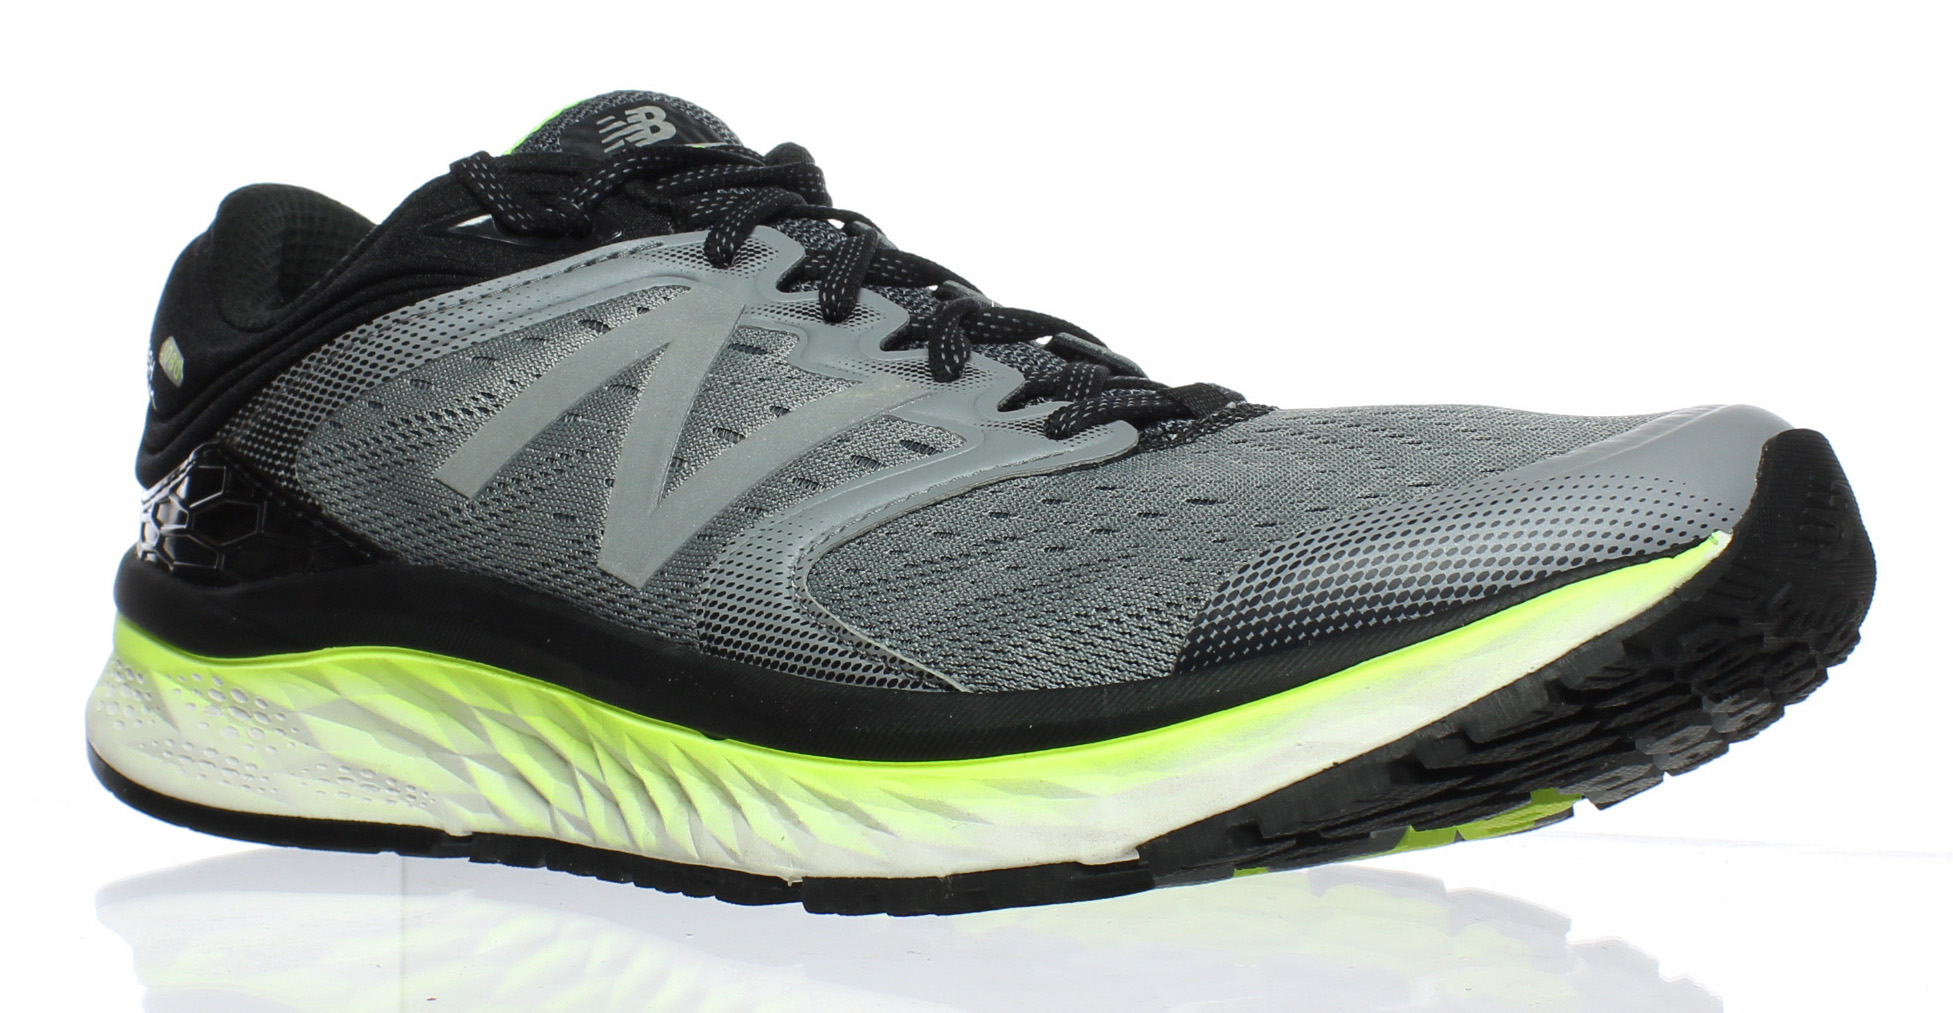 New Balance hommes M1080gy8 Gris /Yellow Running Chaussures